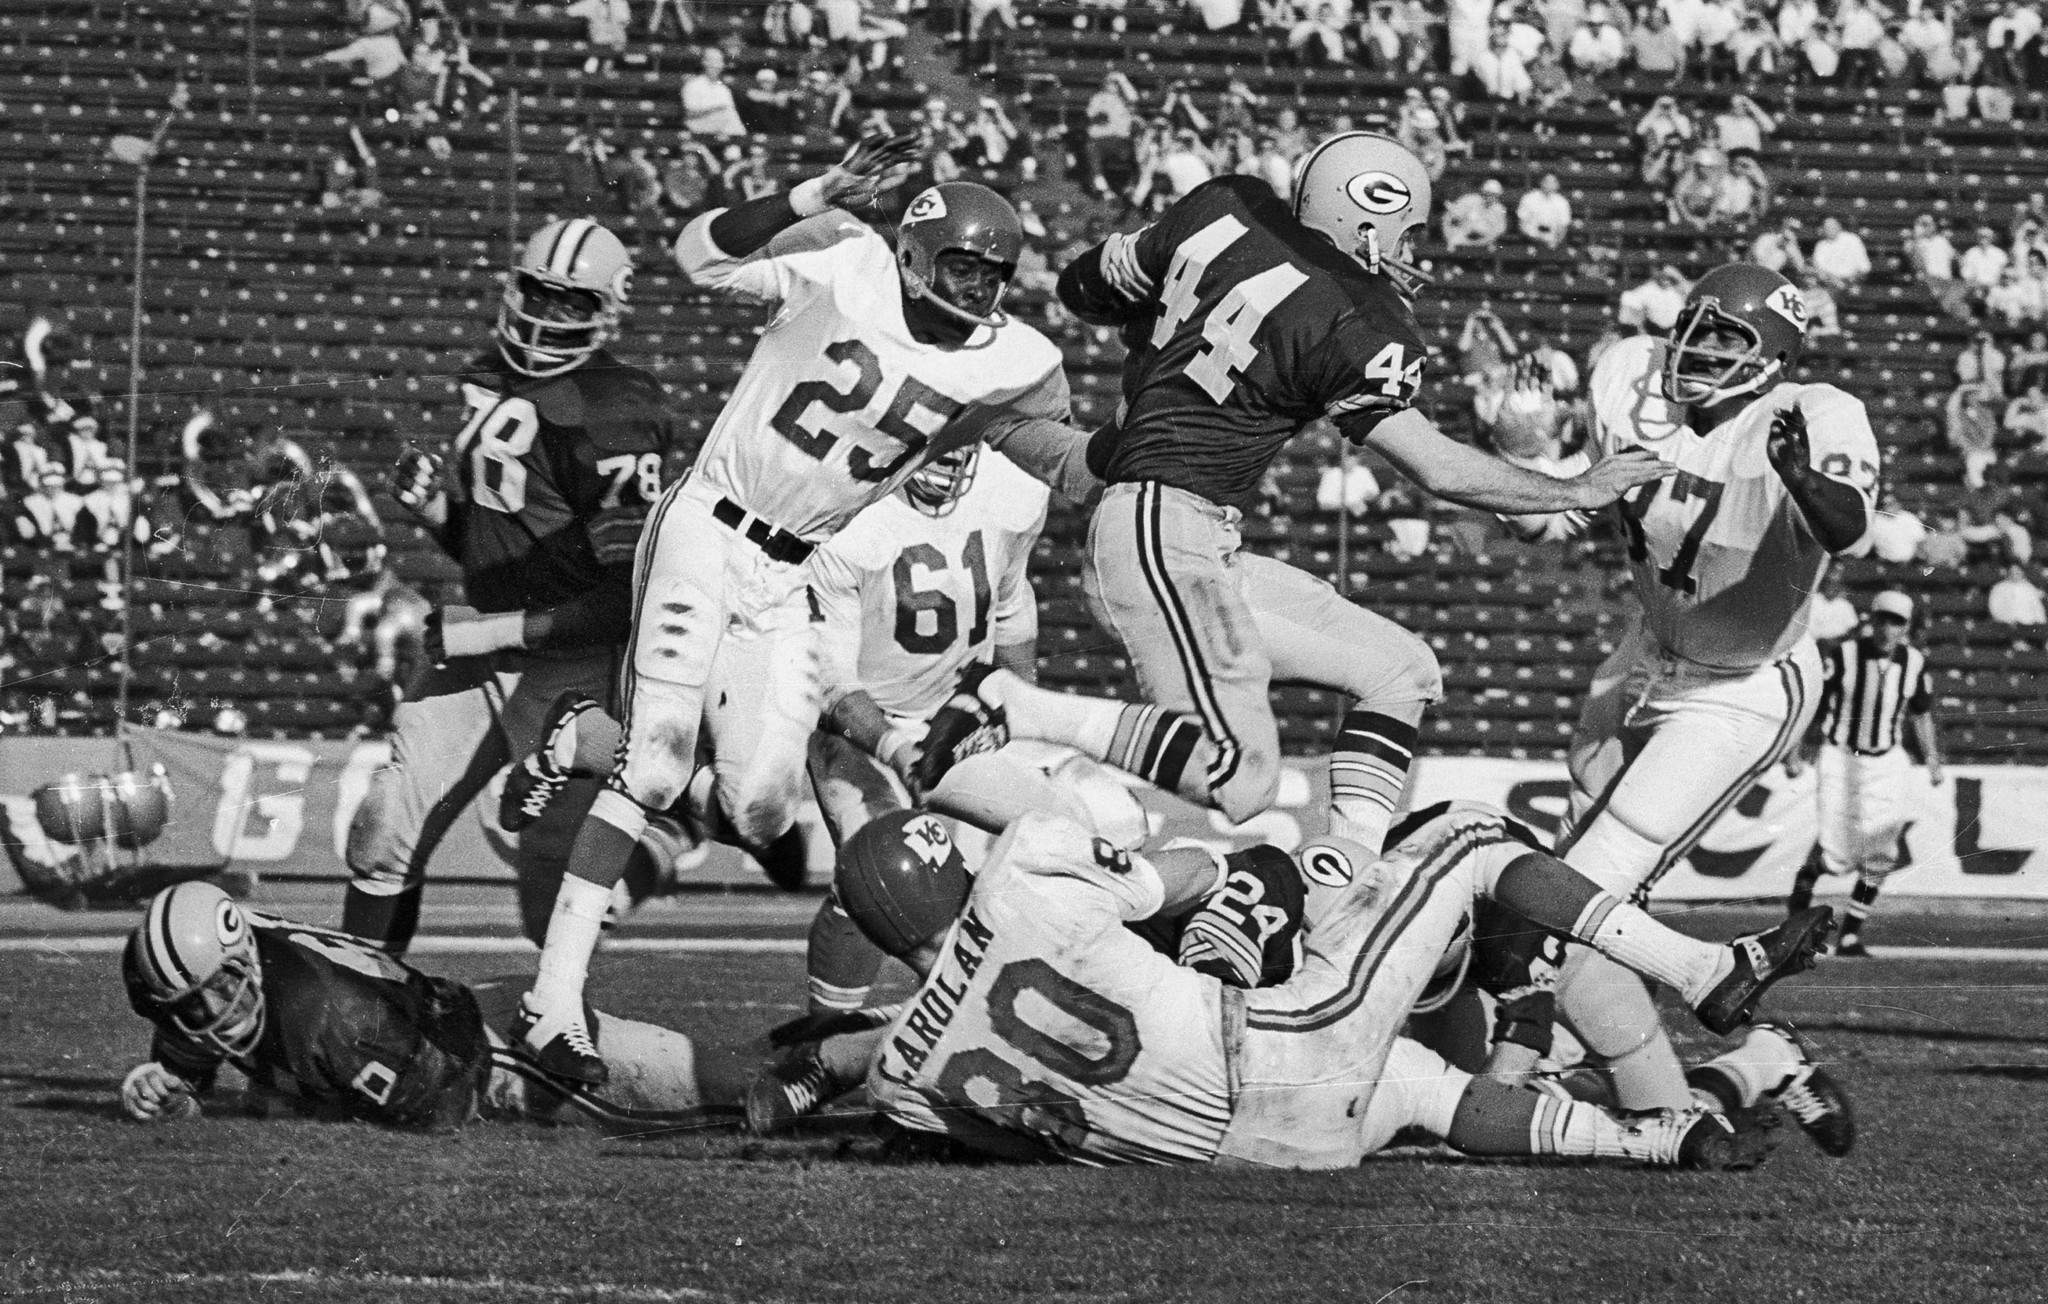 Jan. 15, 1967: Packers' halfback Donny Anderson, 44, running against Chiefs' Frank Pitts, 25, Denny